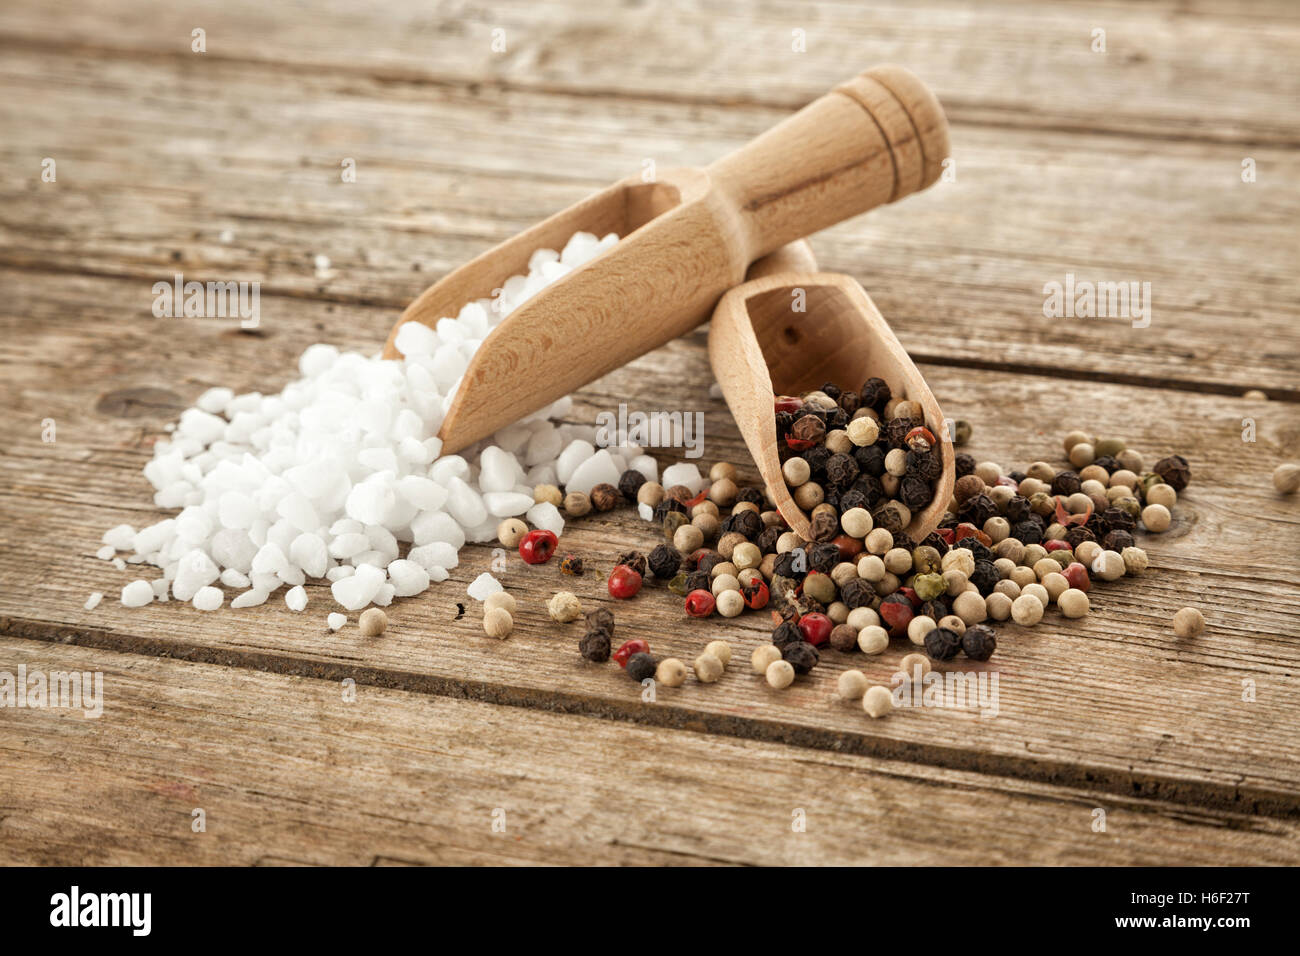 Large-grained salt and mixed peppercorns on wooden shovels, on rustic table - Stock Image